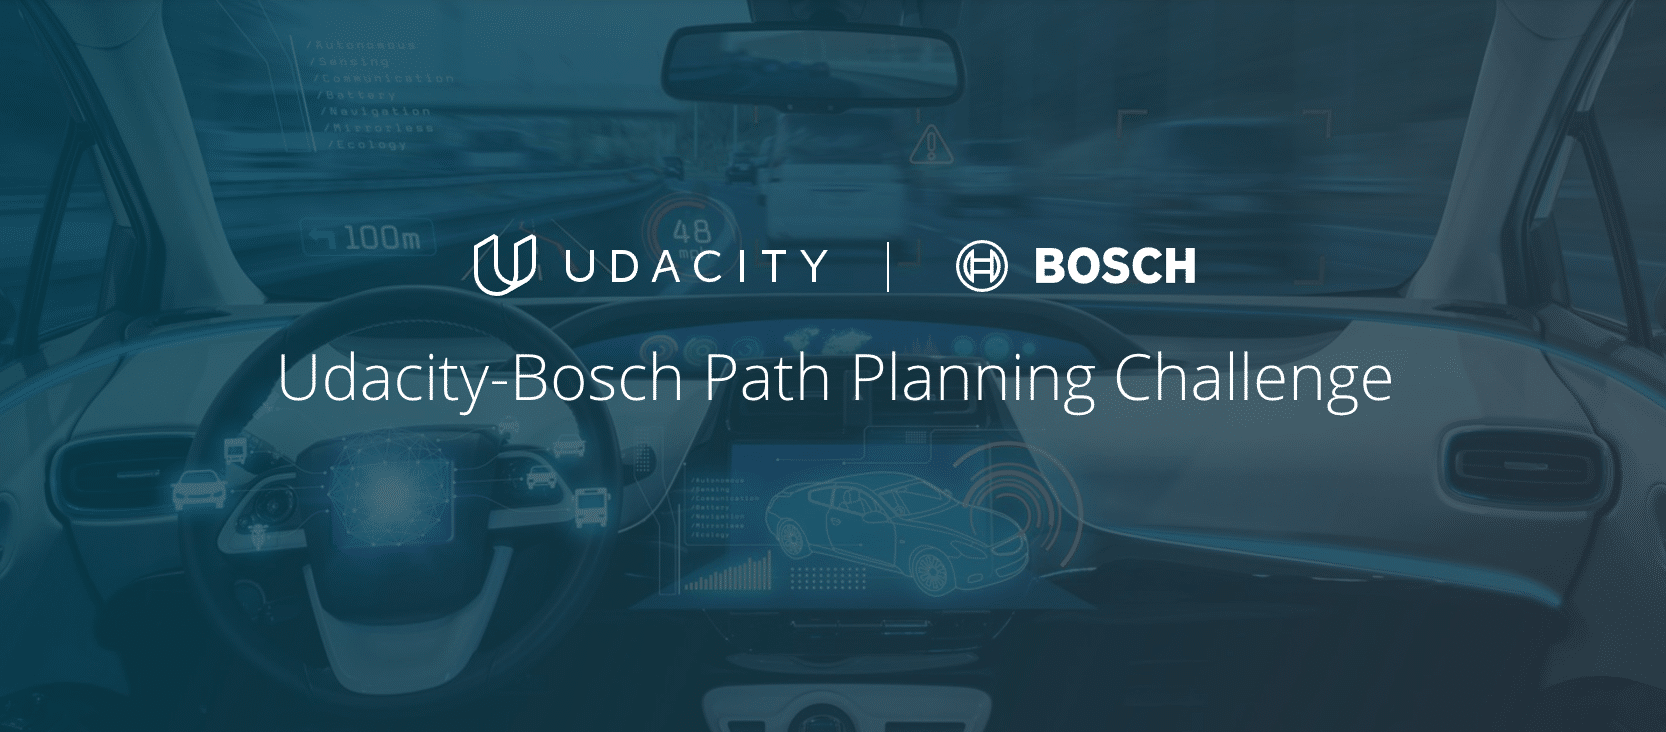 Udacity Bosch - Path Planning Challenge - Self Driving Car